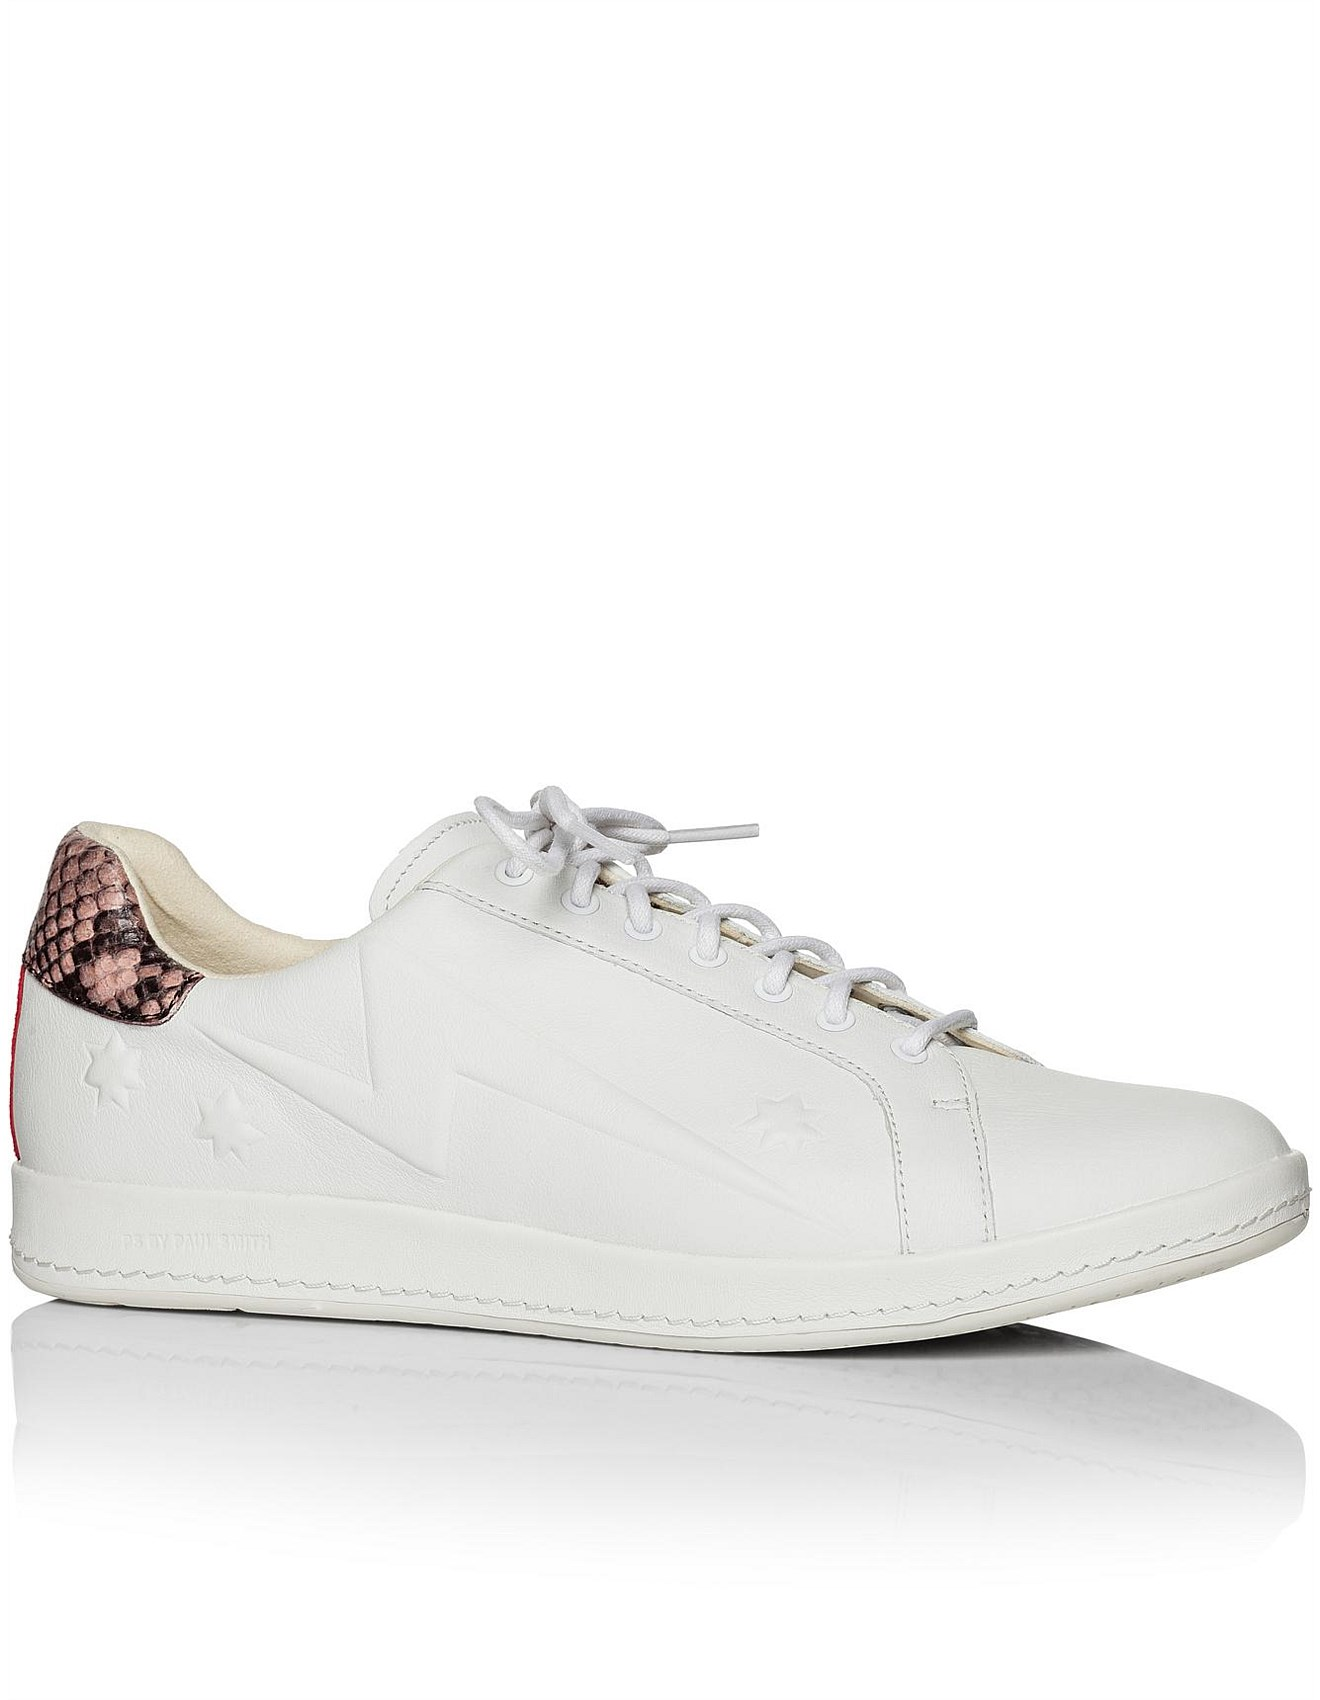 971728ee363 Ps By Paul Smith Lapin White Trainer With Snake Heel Trim